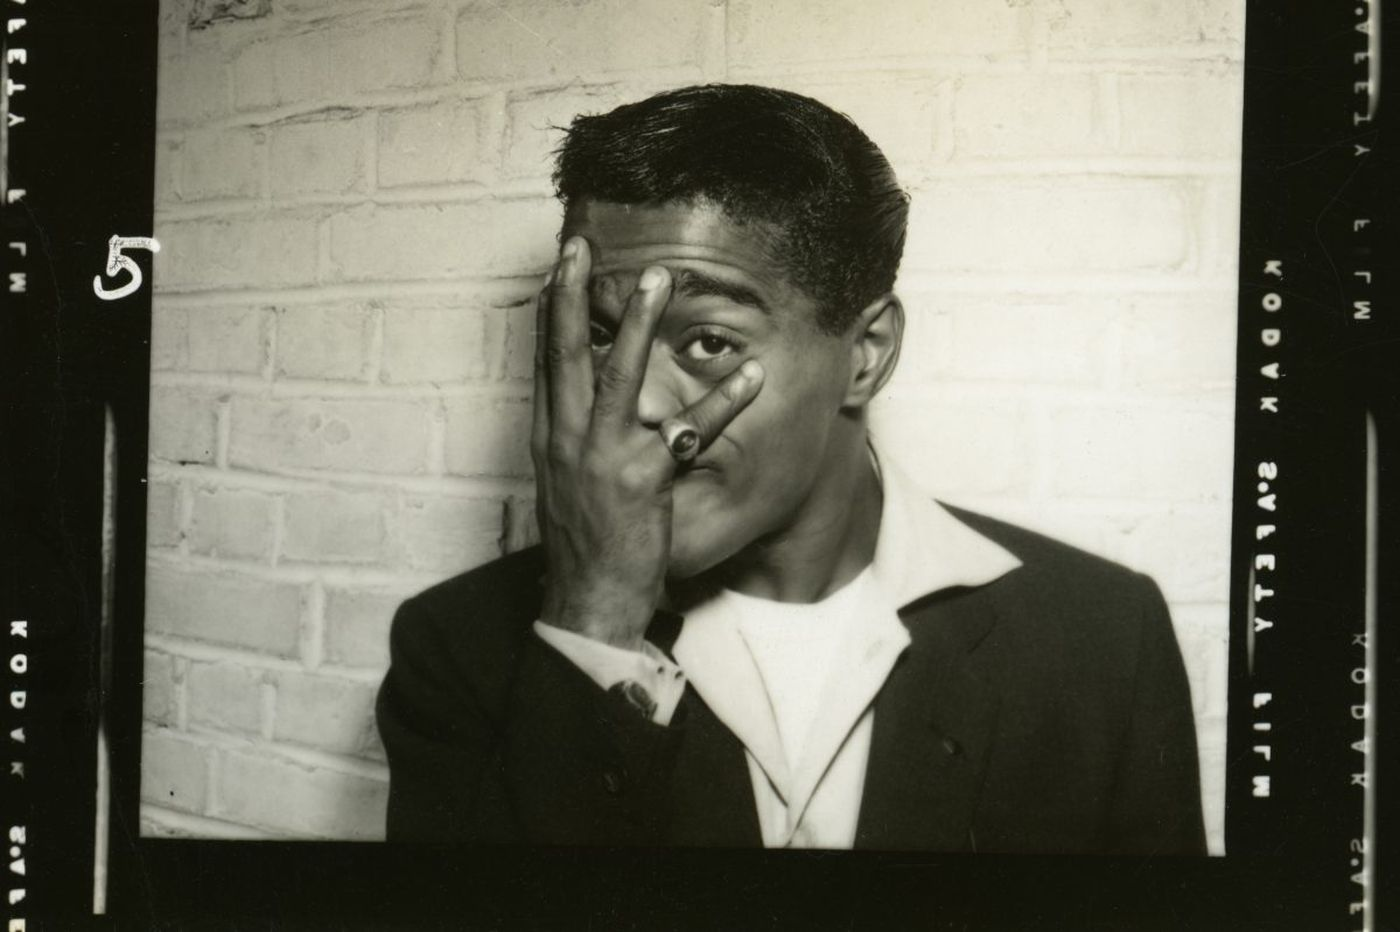 Sammy Davis Jr. was a civil rights pioneer, so why was he left behind by changing times?